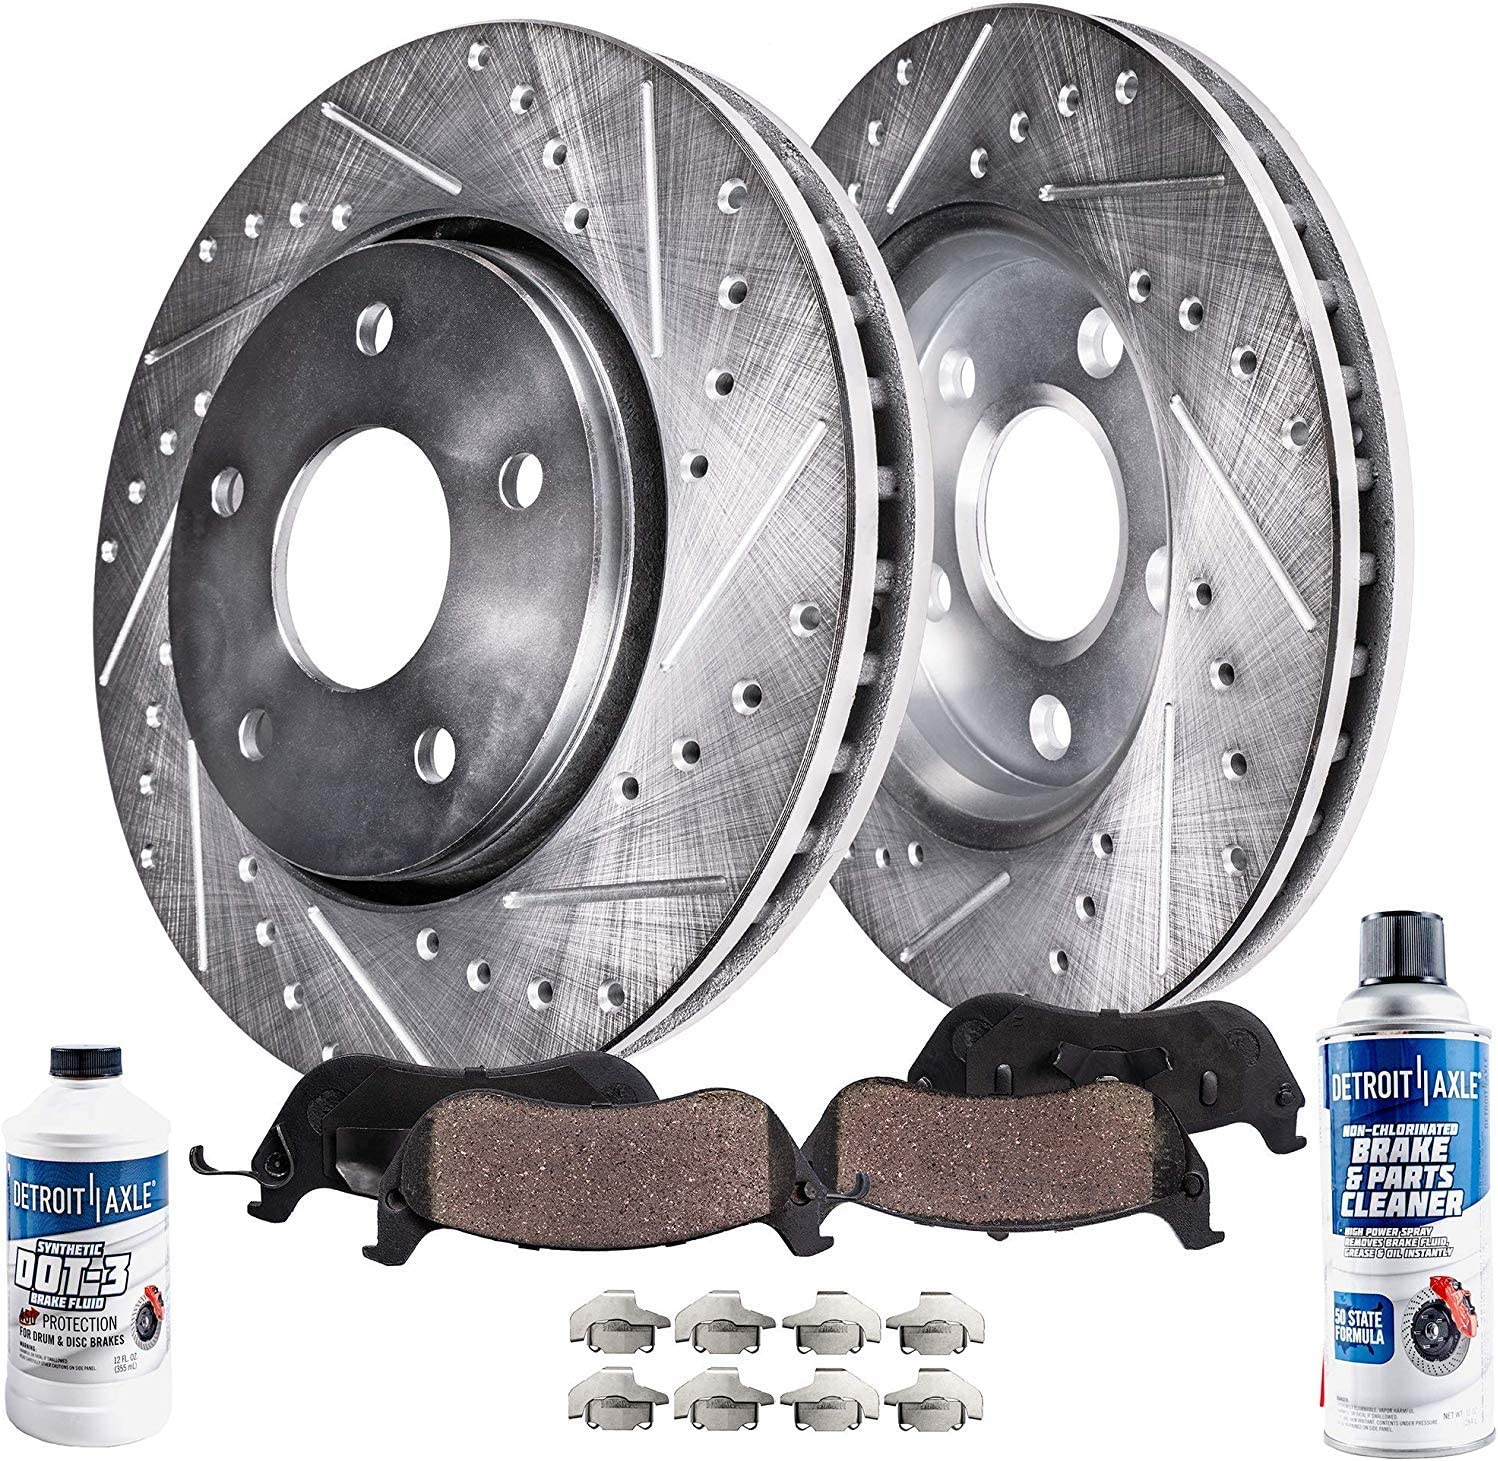 Detroit Axle Long-awaited - Front Drilled Slotted Pa Ceramic Rotors Limited price sale + Brake